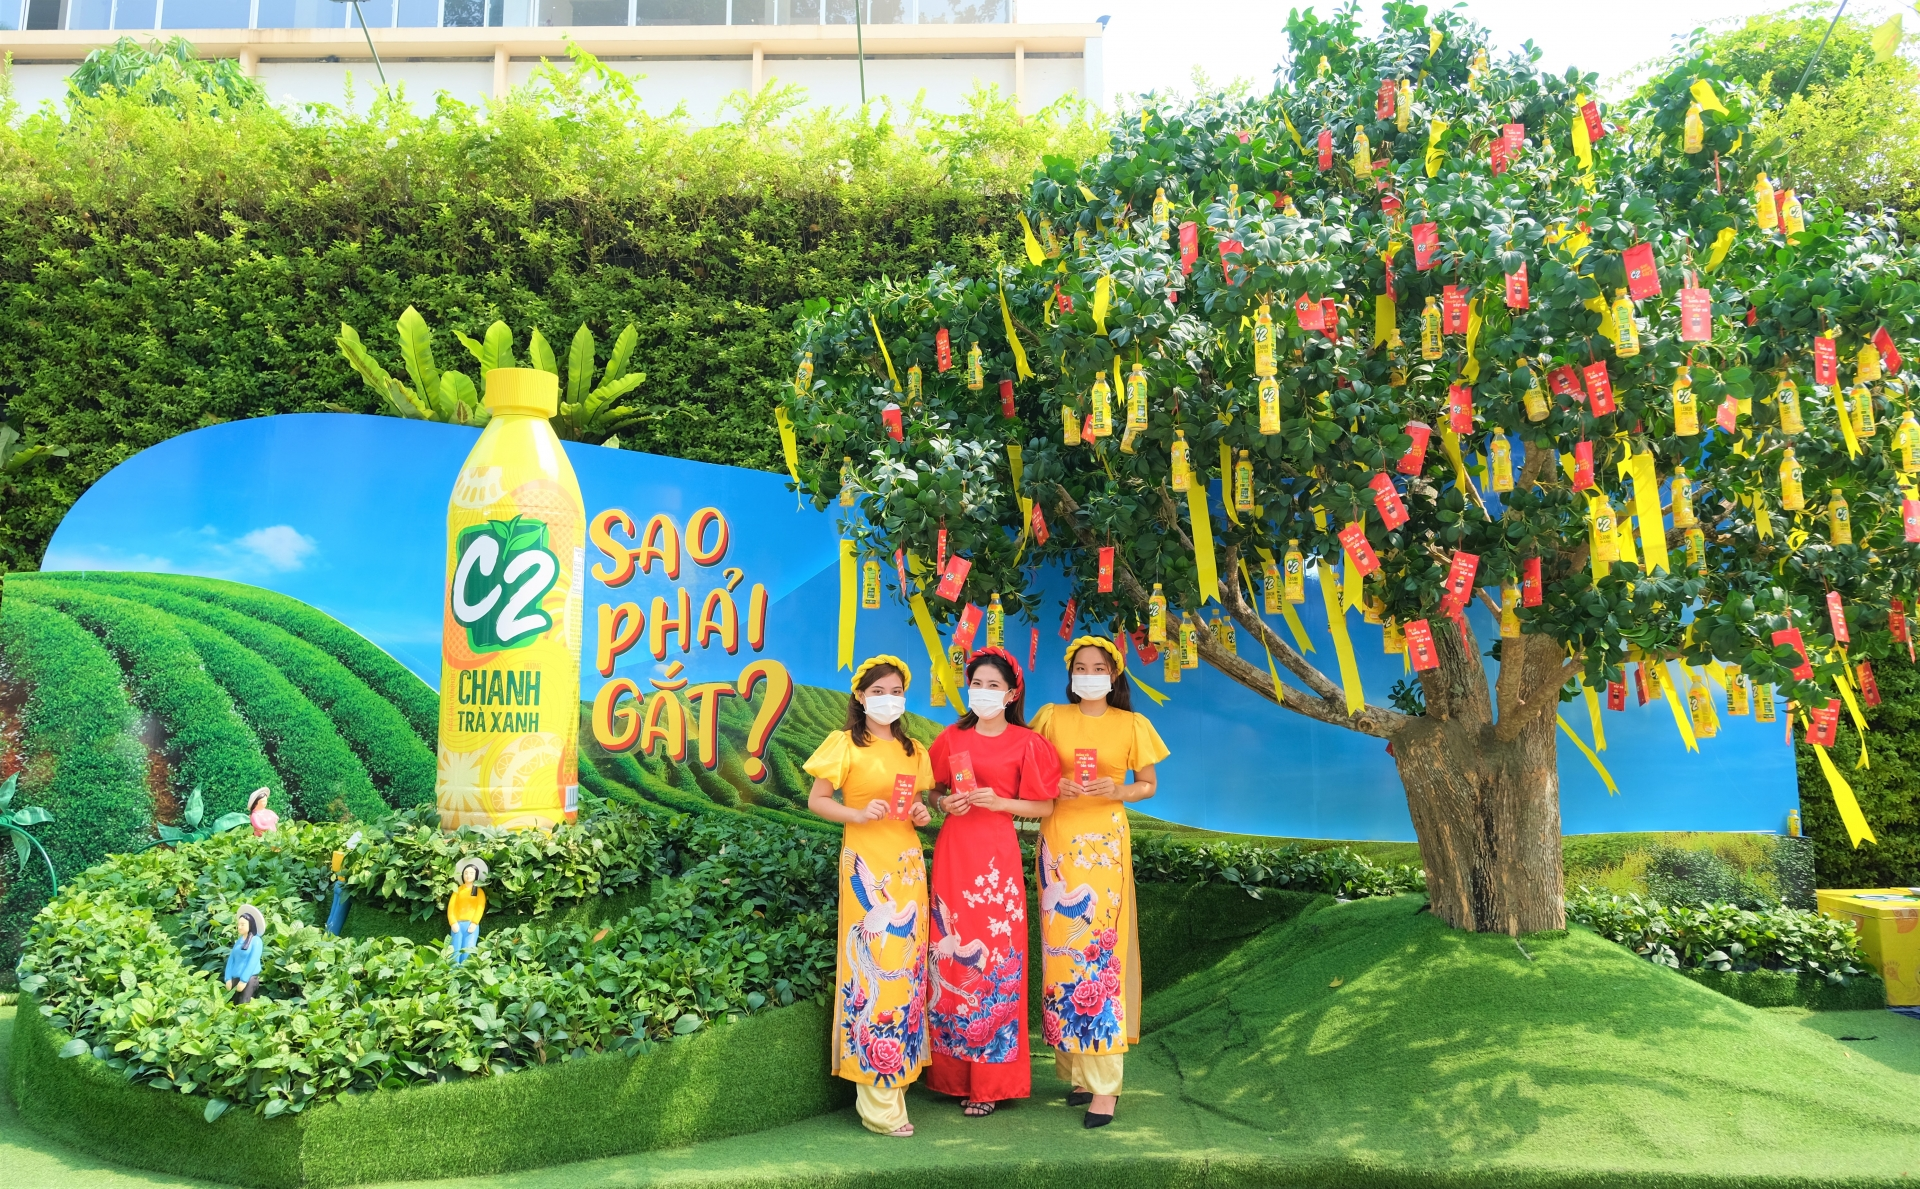 giant ancient tea tree becomes spotlight for tet festival 2021